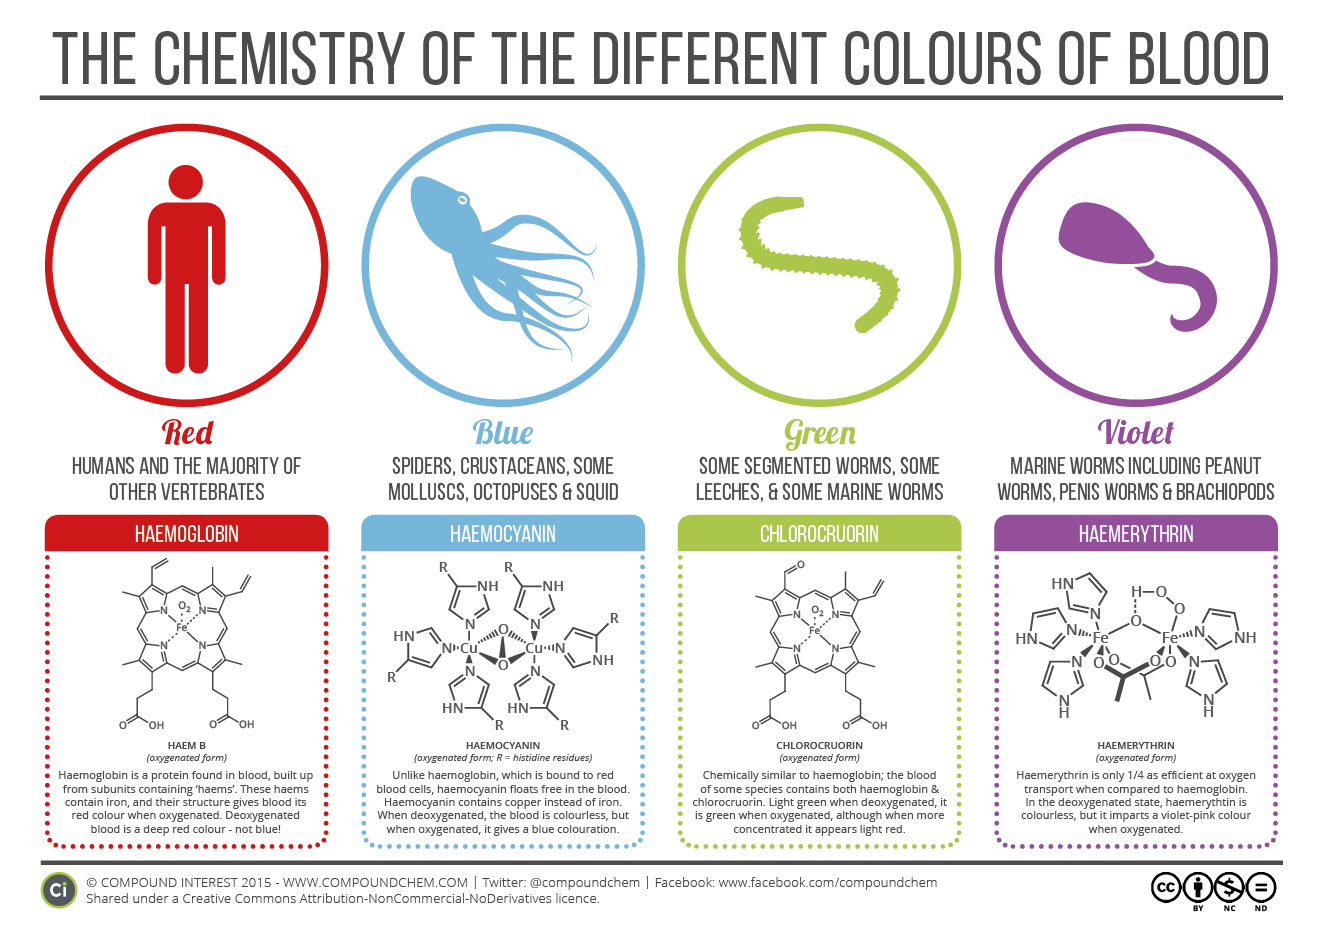 Human White Blood Cell Diagram Cells Overview Stock The Chemistry Of Colours Compound Interest 2015